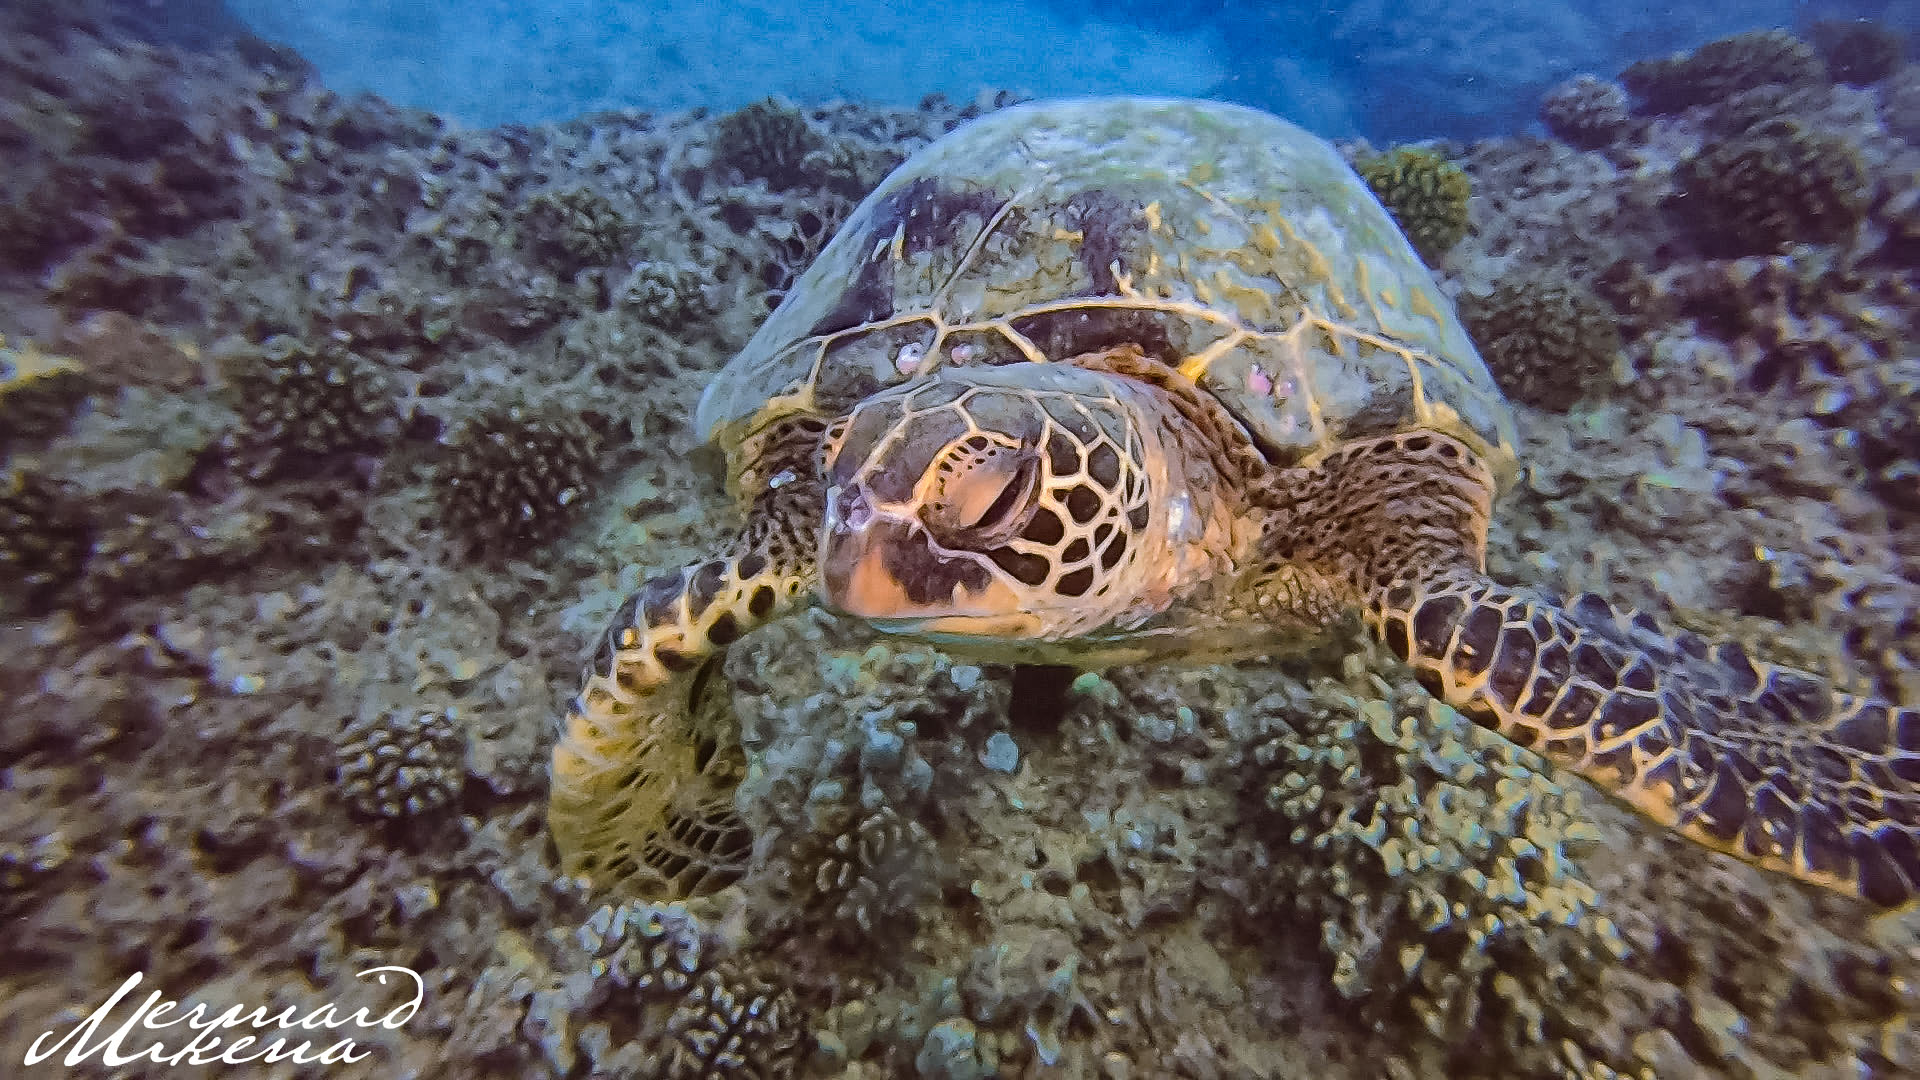 The Hawaiian Green Sea Turtle is the most common seen turtle in the waters of Hawaii